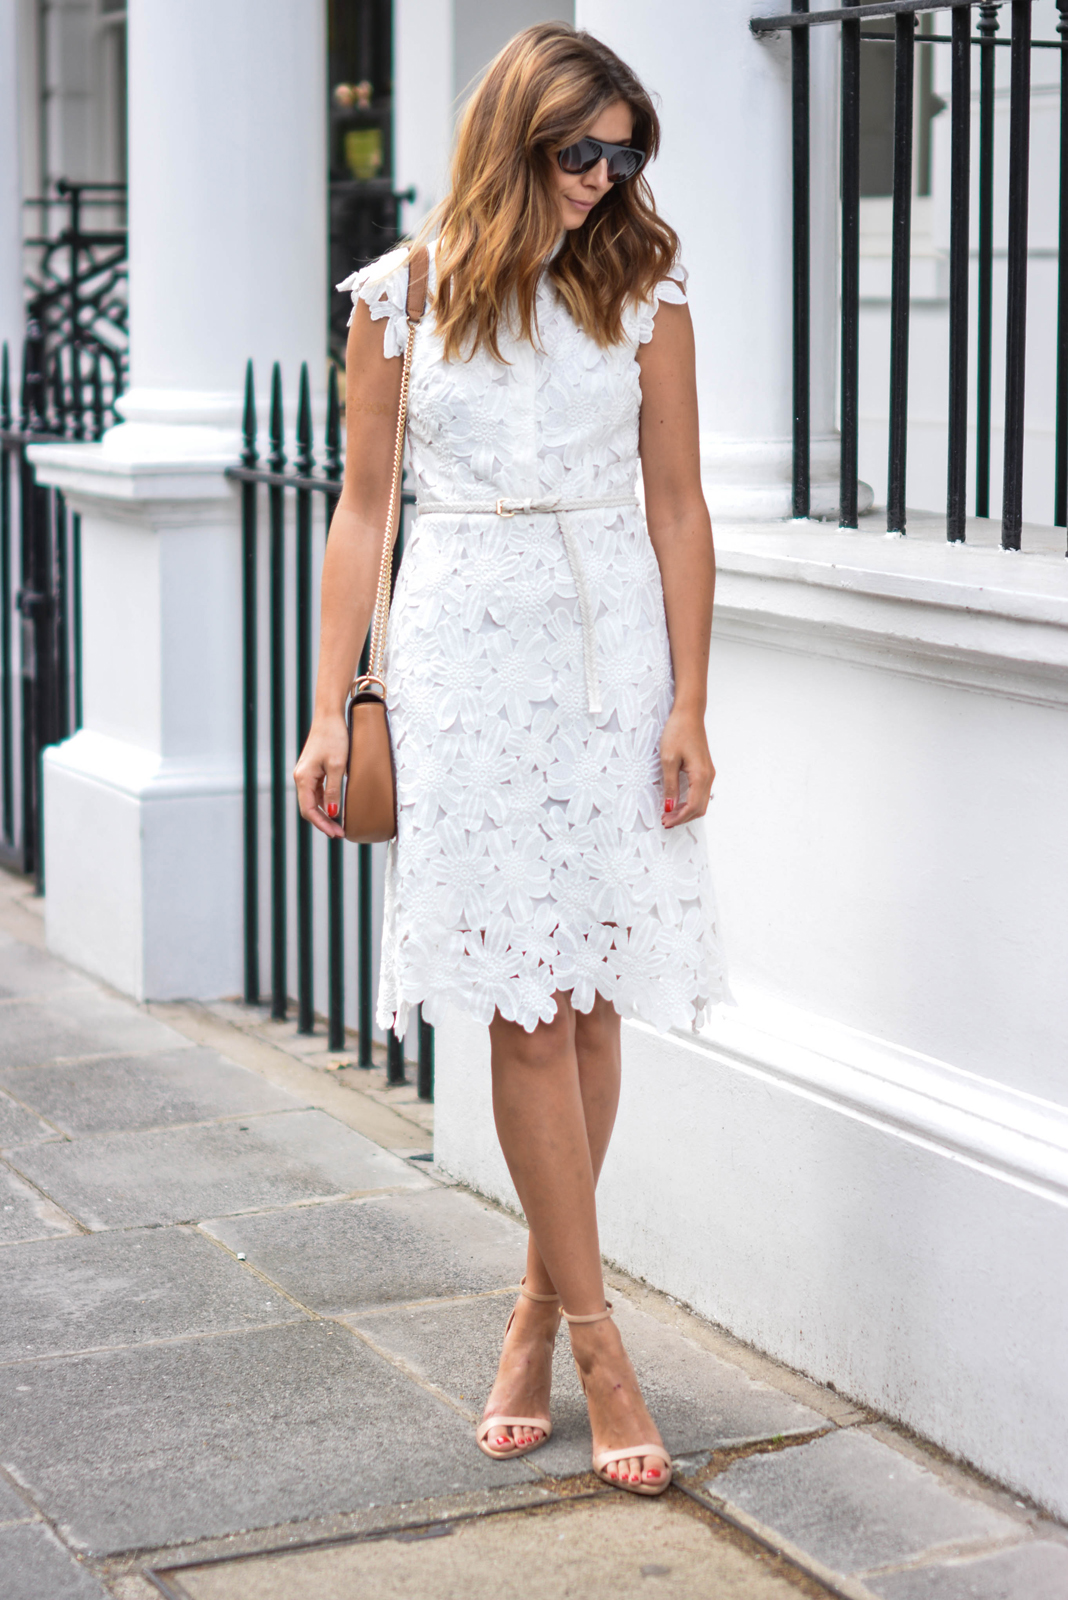 EJSTYLE wears white lace dress, nude barely there sandals, tan shoulder bag, wedding guest outfit, bridal shower outfit